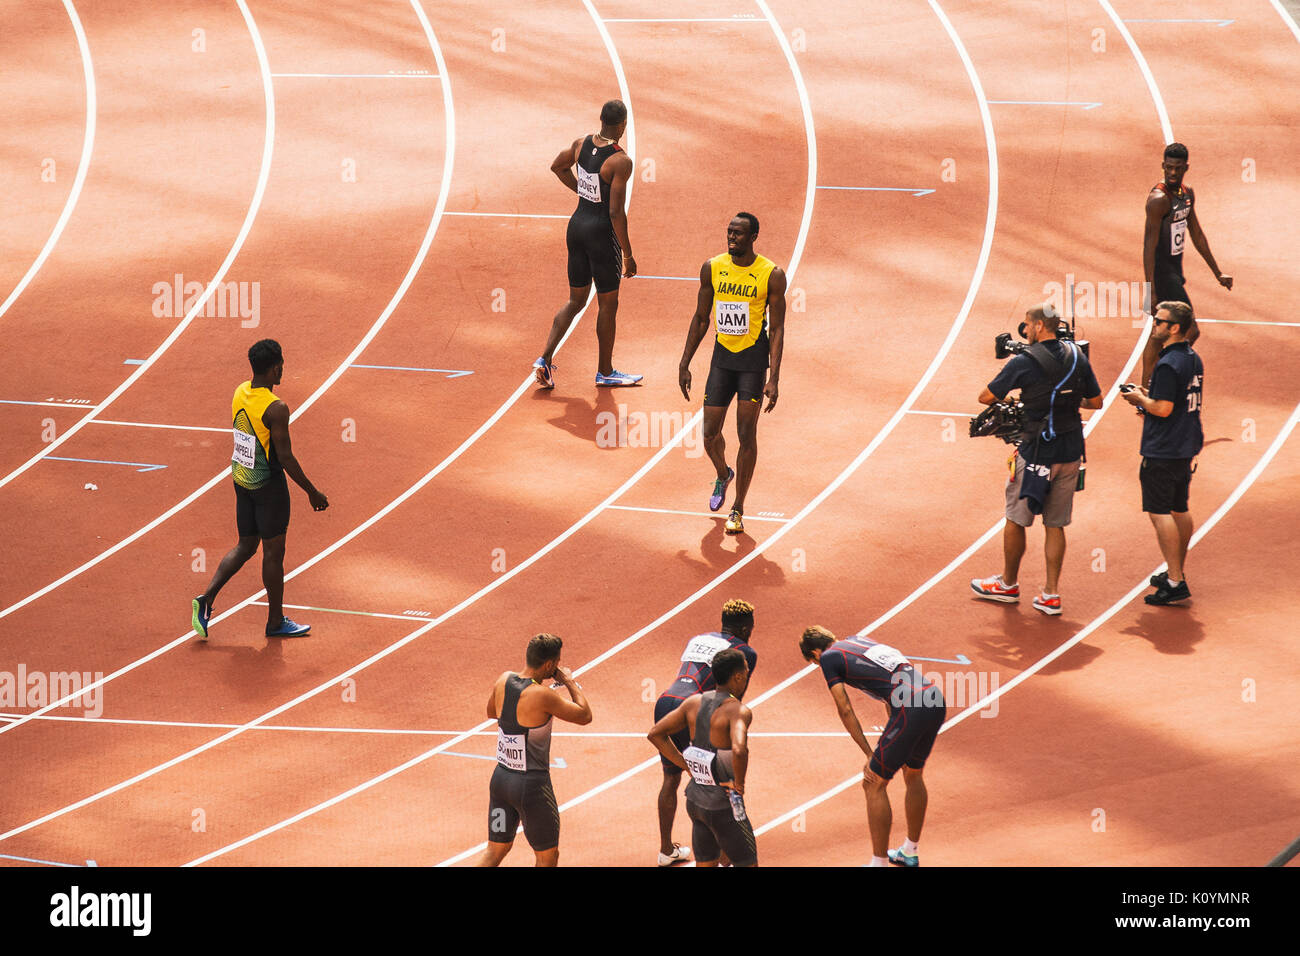 Usain Bolt following the heats of the 4x100m relay event at London 2017, held in the Olympic Stadium on August 12, 2017. - Stock Image